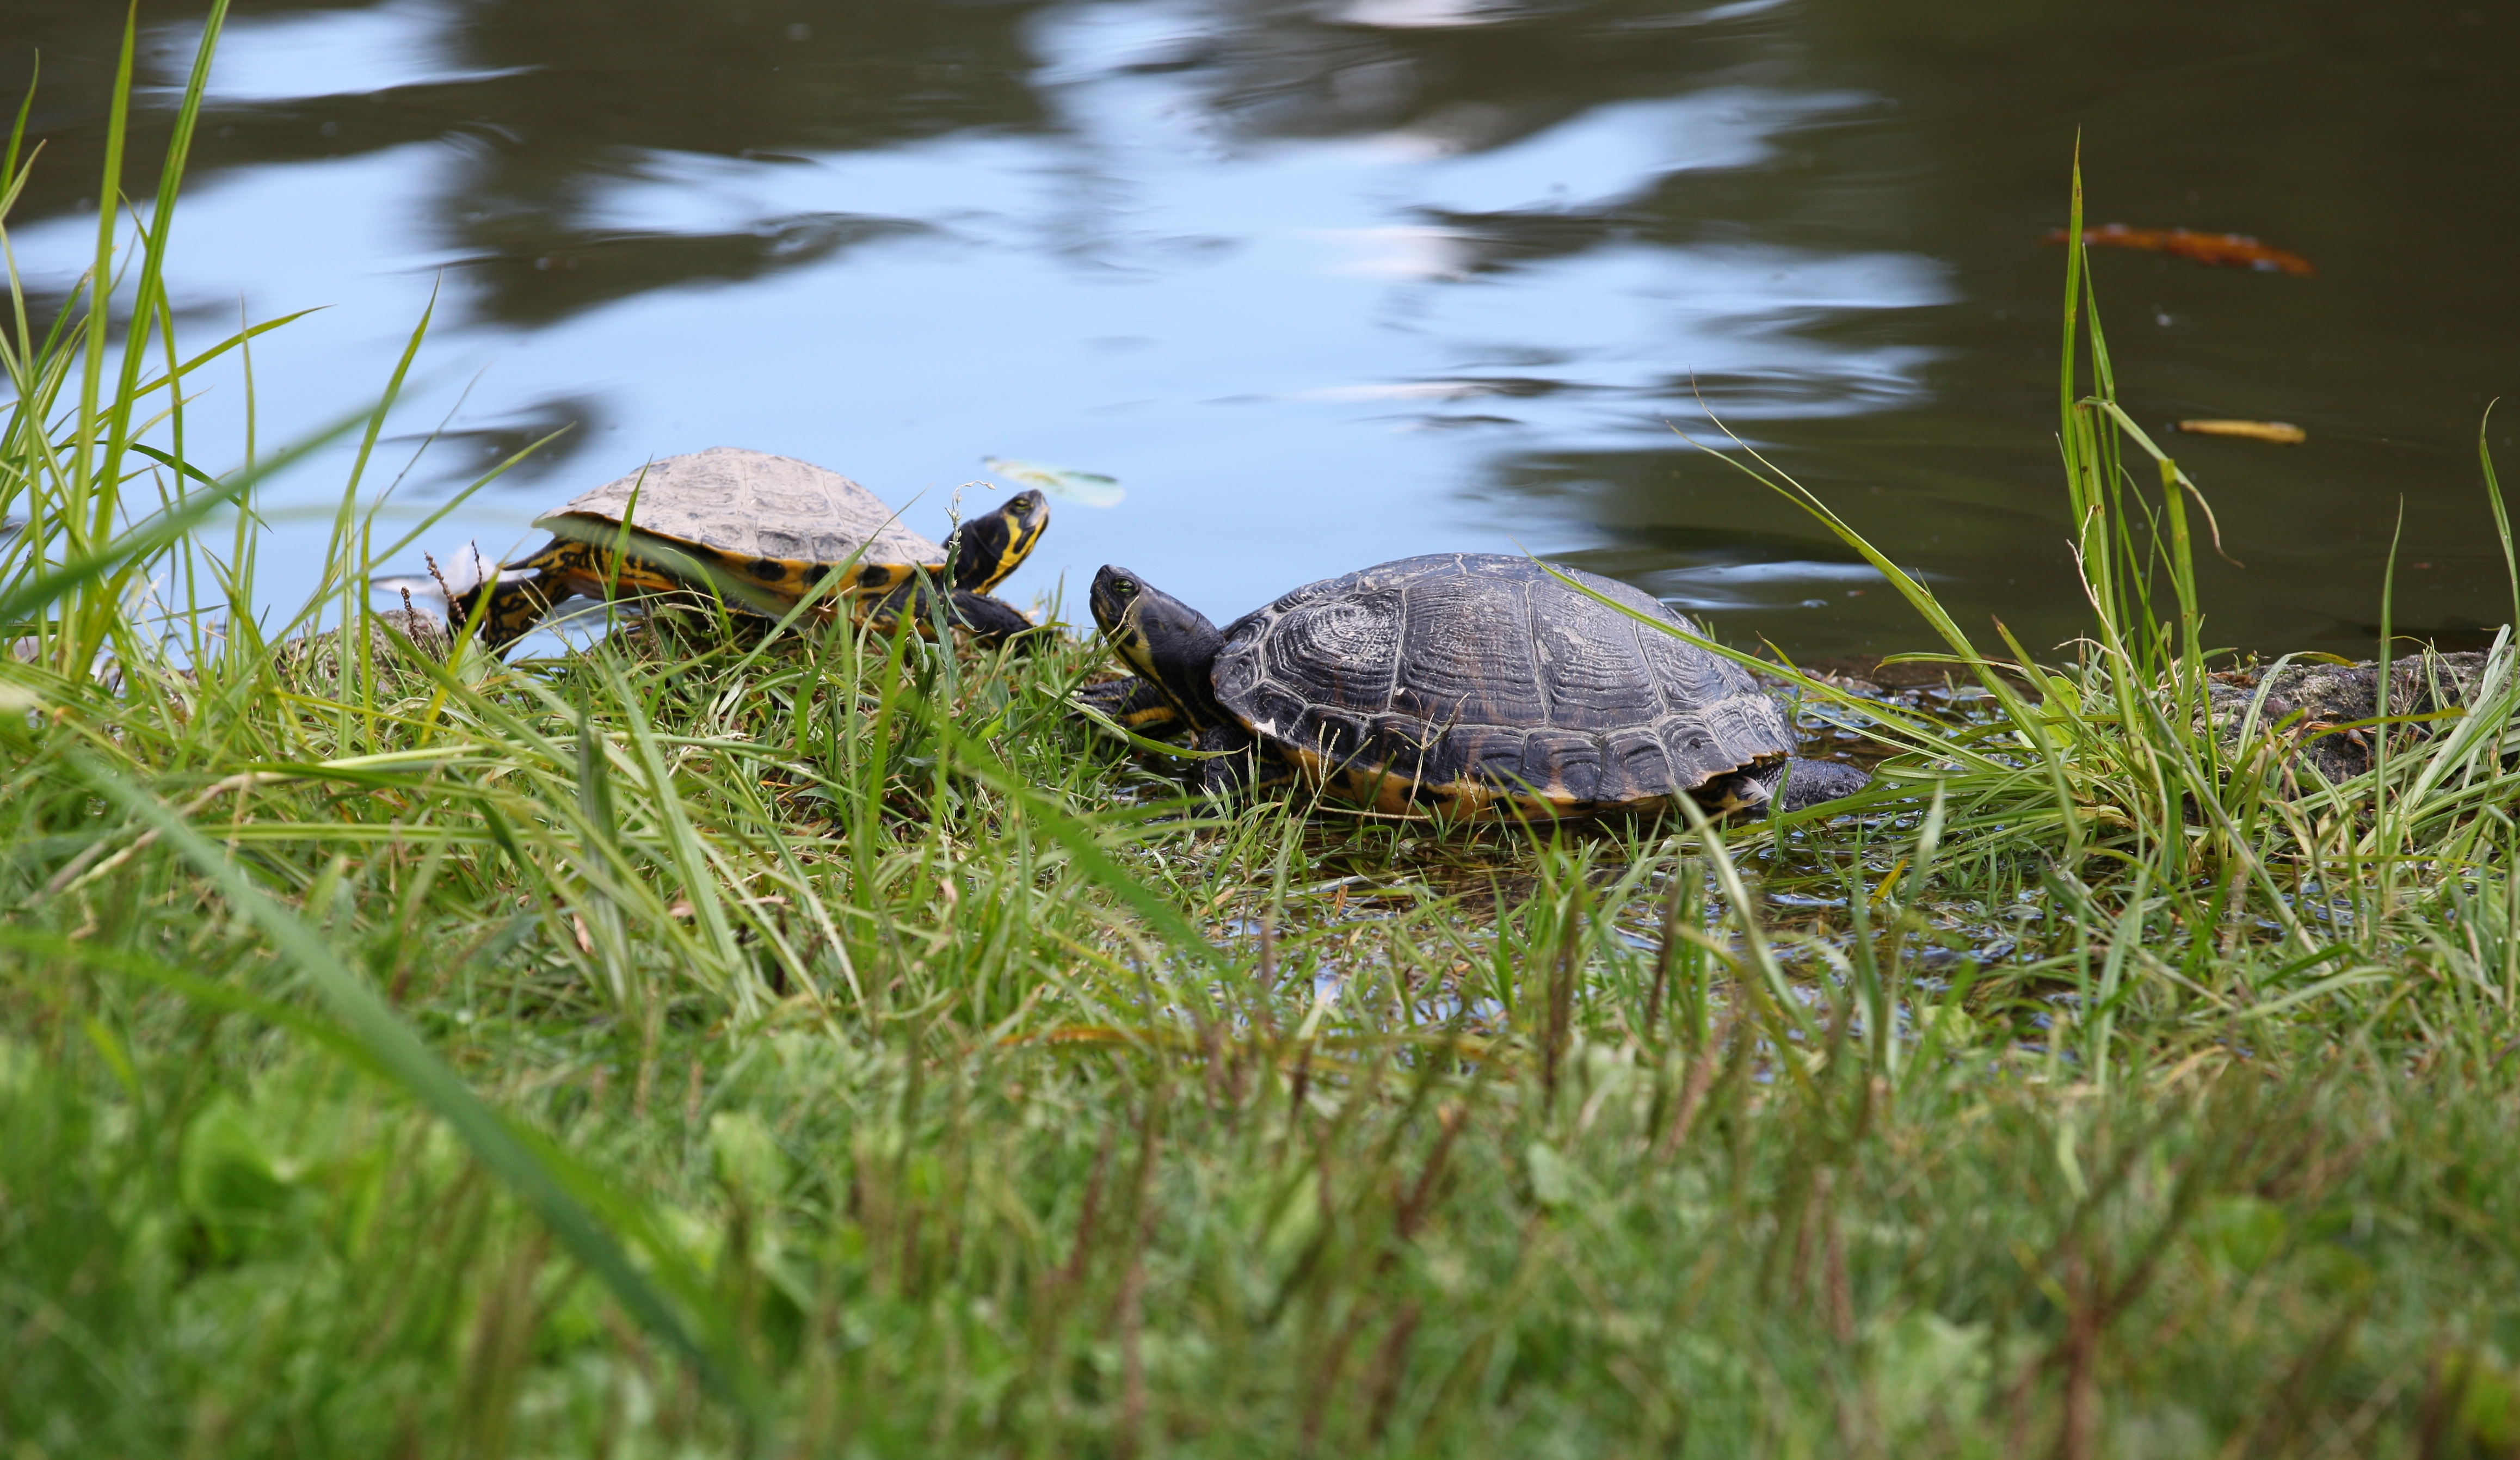 turtles in Milan, Italy, European Union, August 2013, picture 59